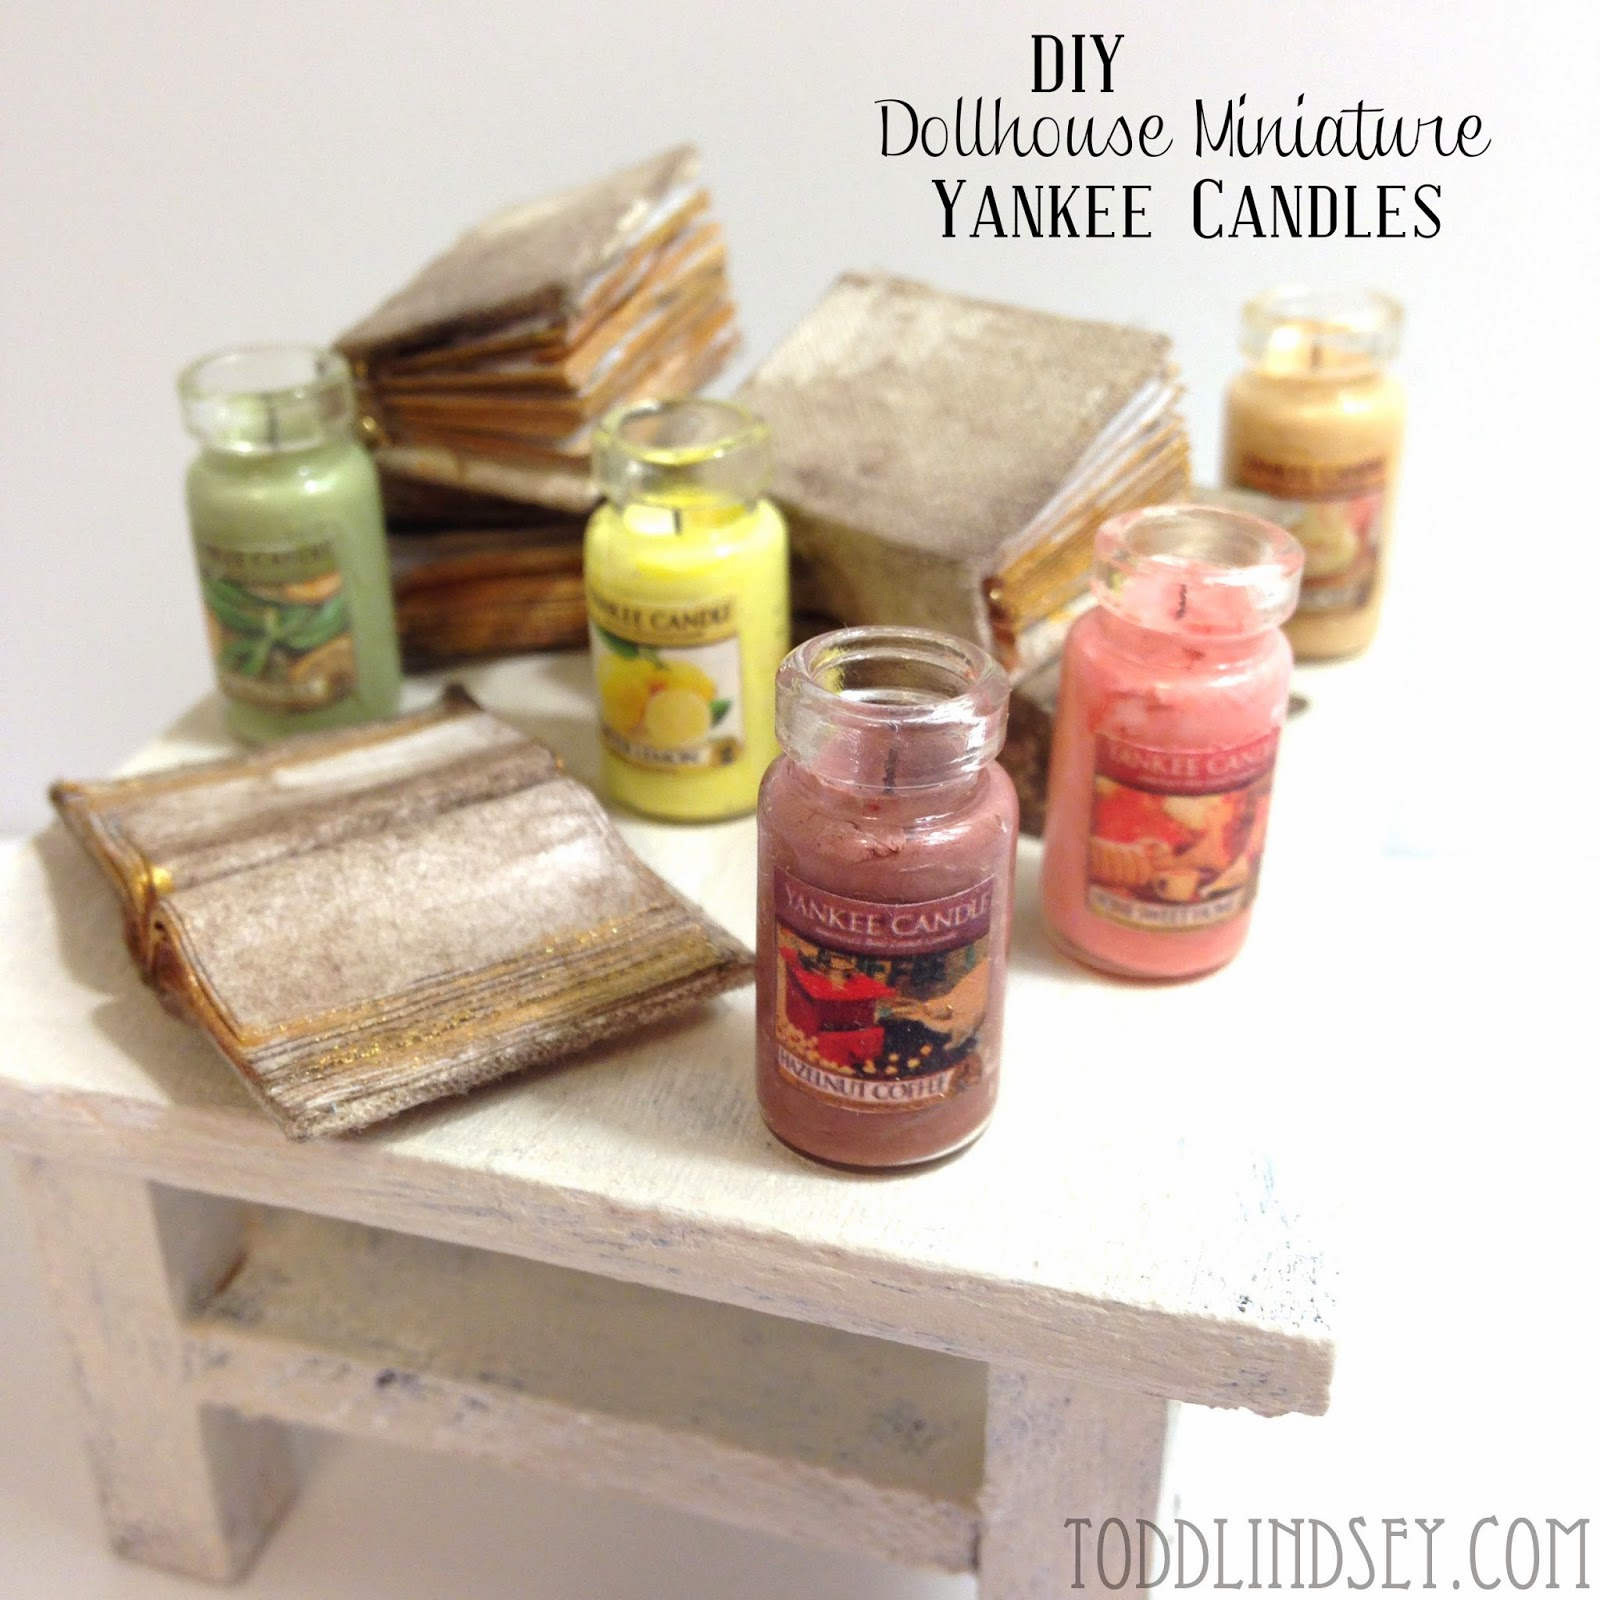 domer home diy dollhouse miniature yankee candles. Black Bedroom Furniture Sets. Home Design Ideas